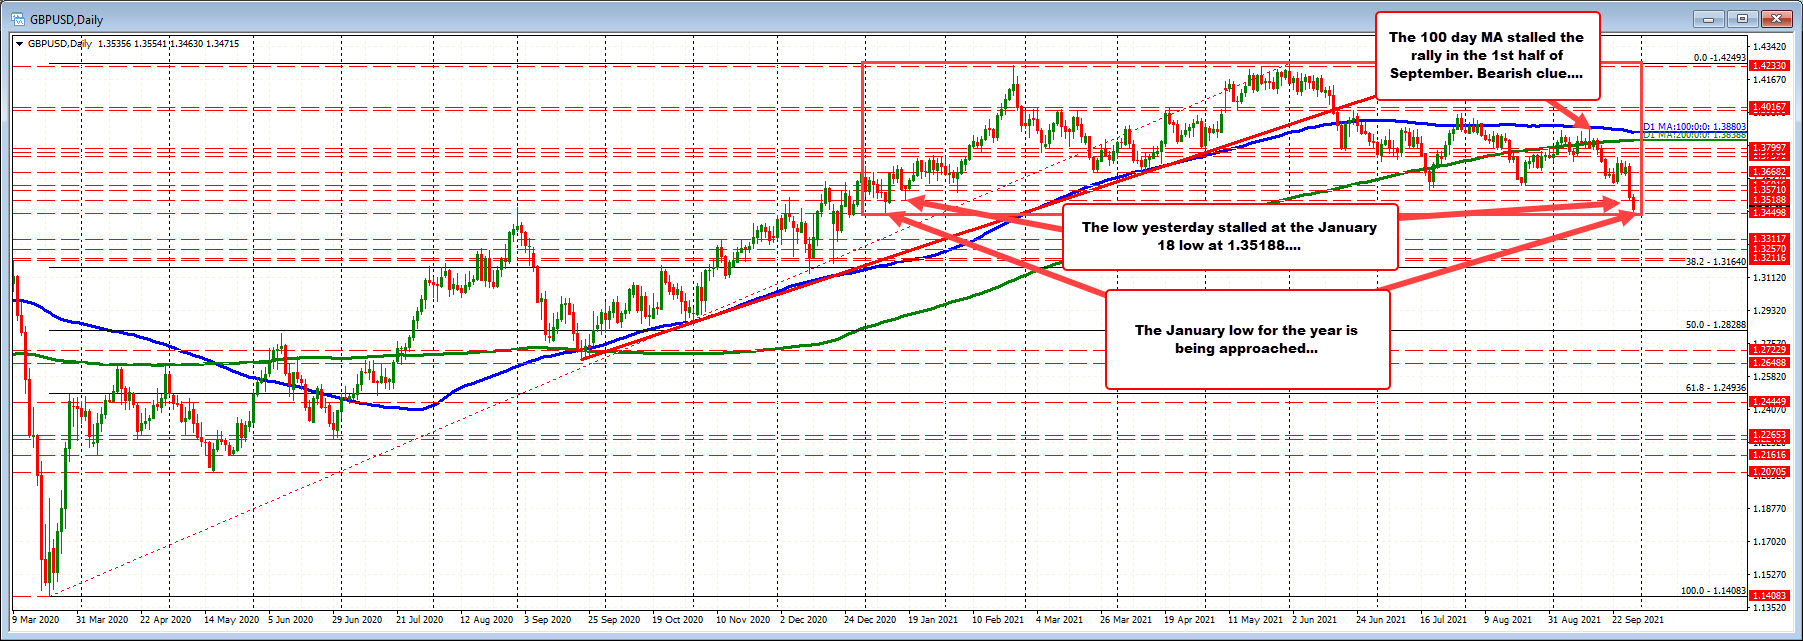 GBPUSD moves closer to the 2020 low. Making a new low in early US trading